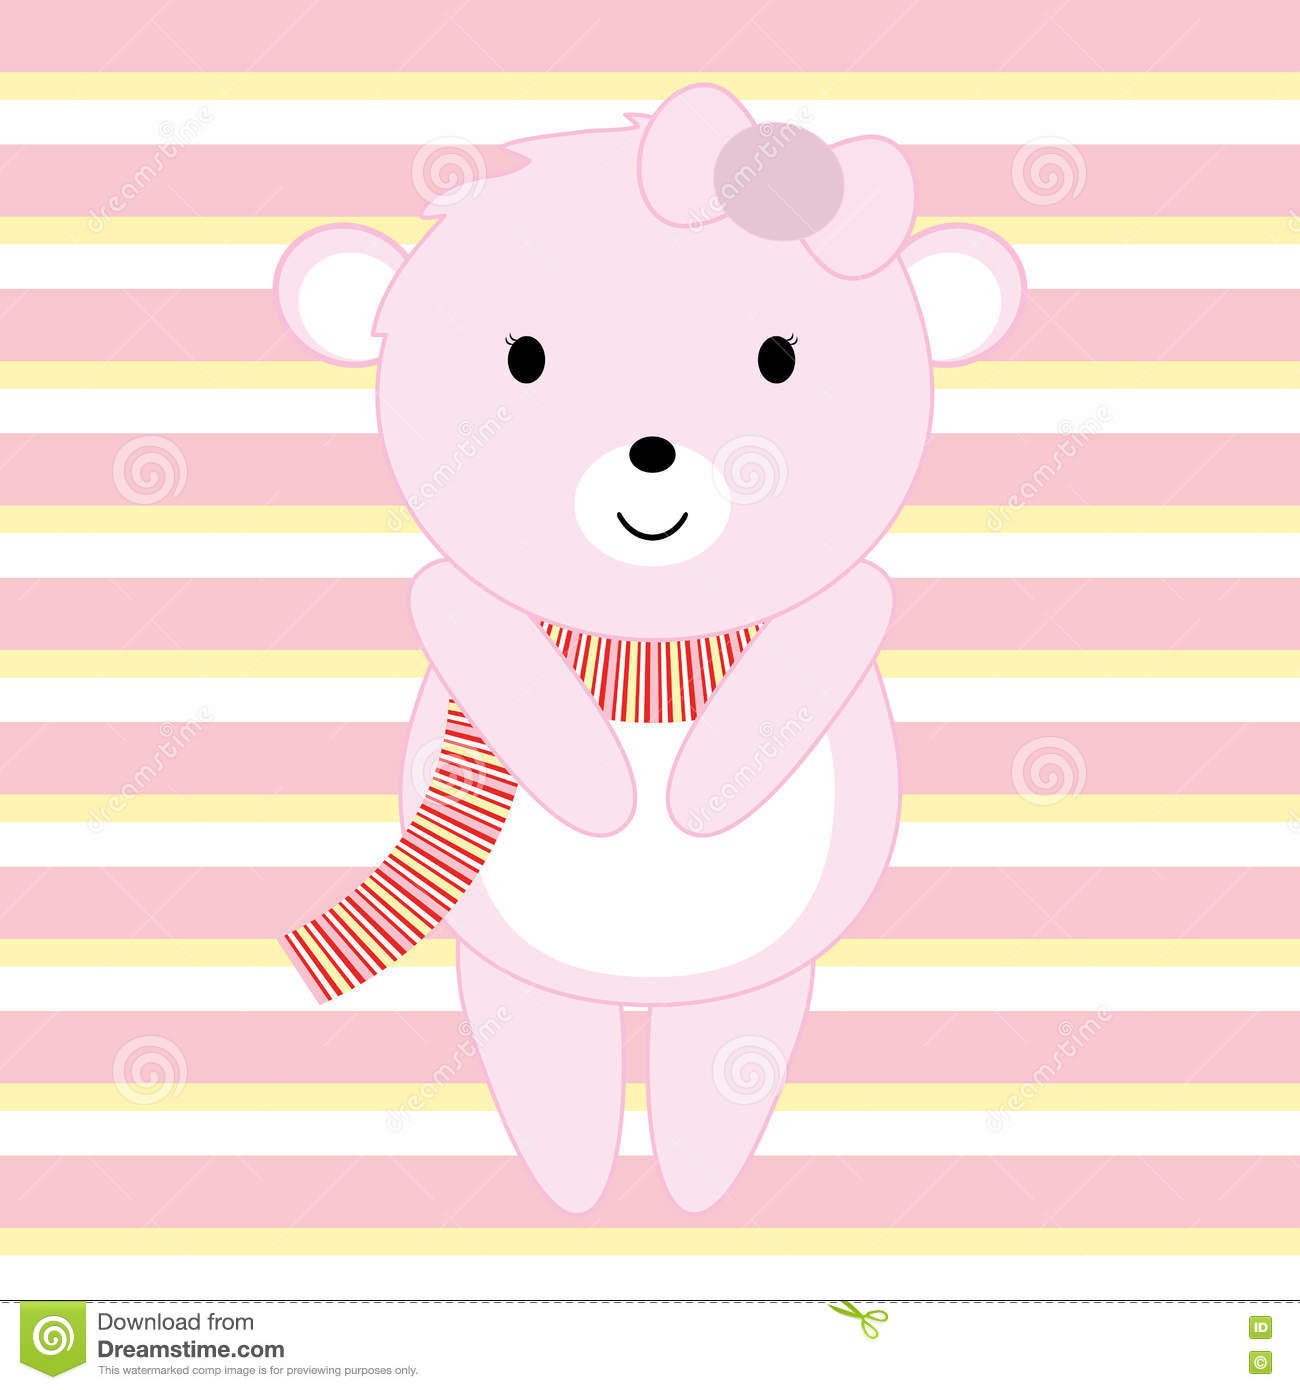 Baby Shower illustration with cute pink baby bear suitable for invitation card, postcard and nursery wall